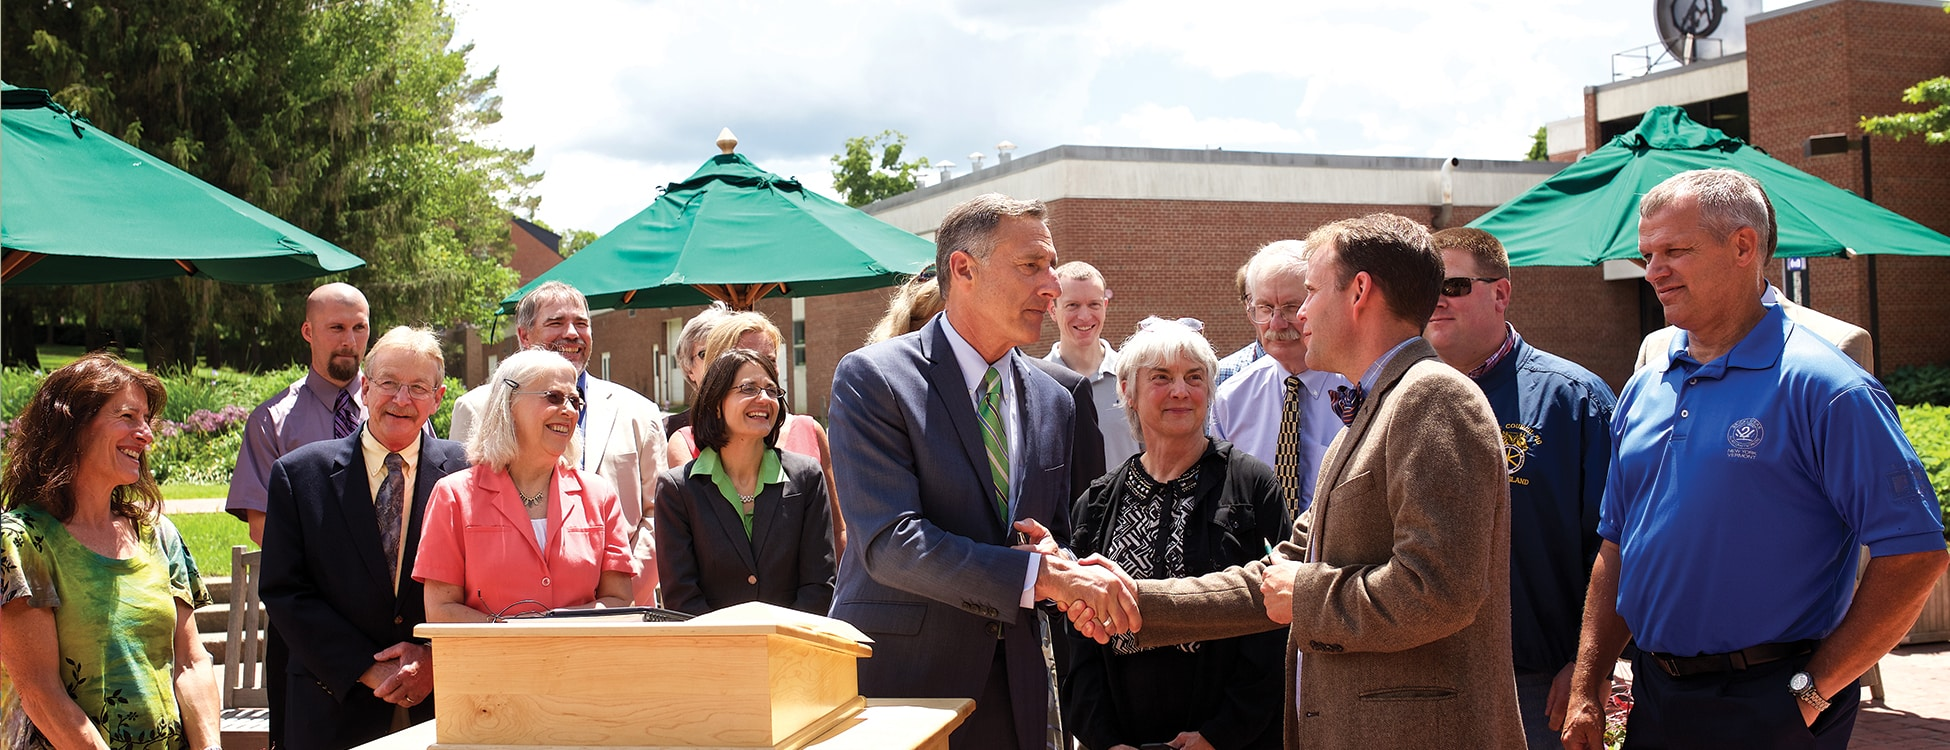 Governor Shumlin, Vermont, shaking hands, outside, press conference, Randolph Center campus